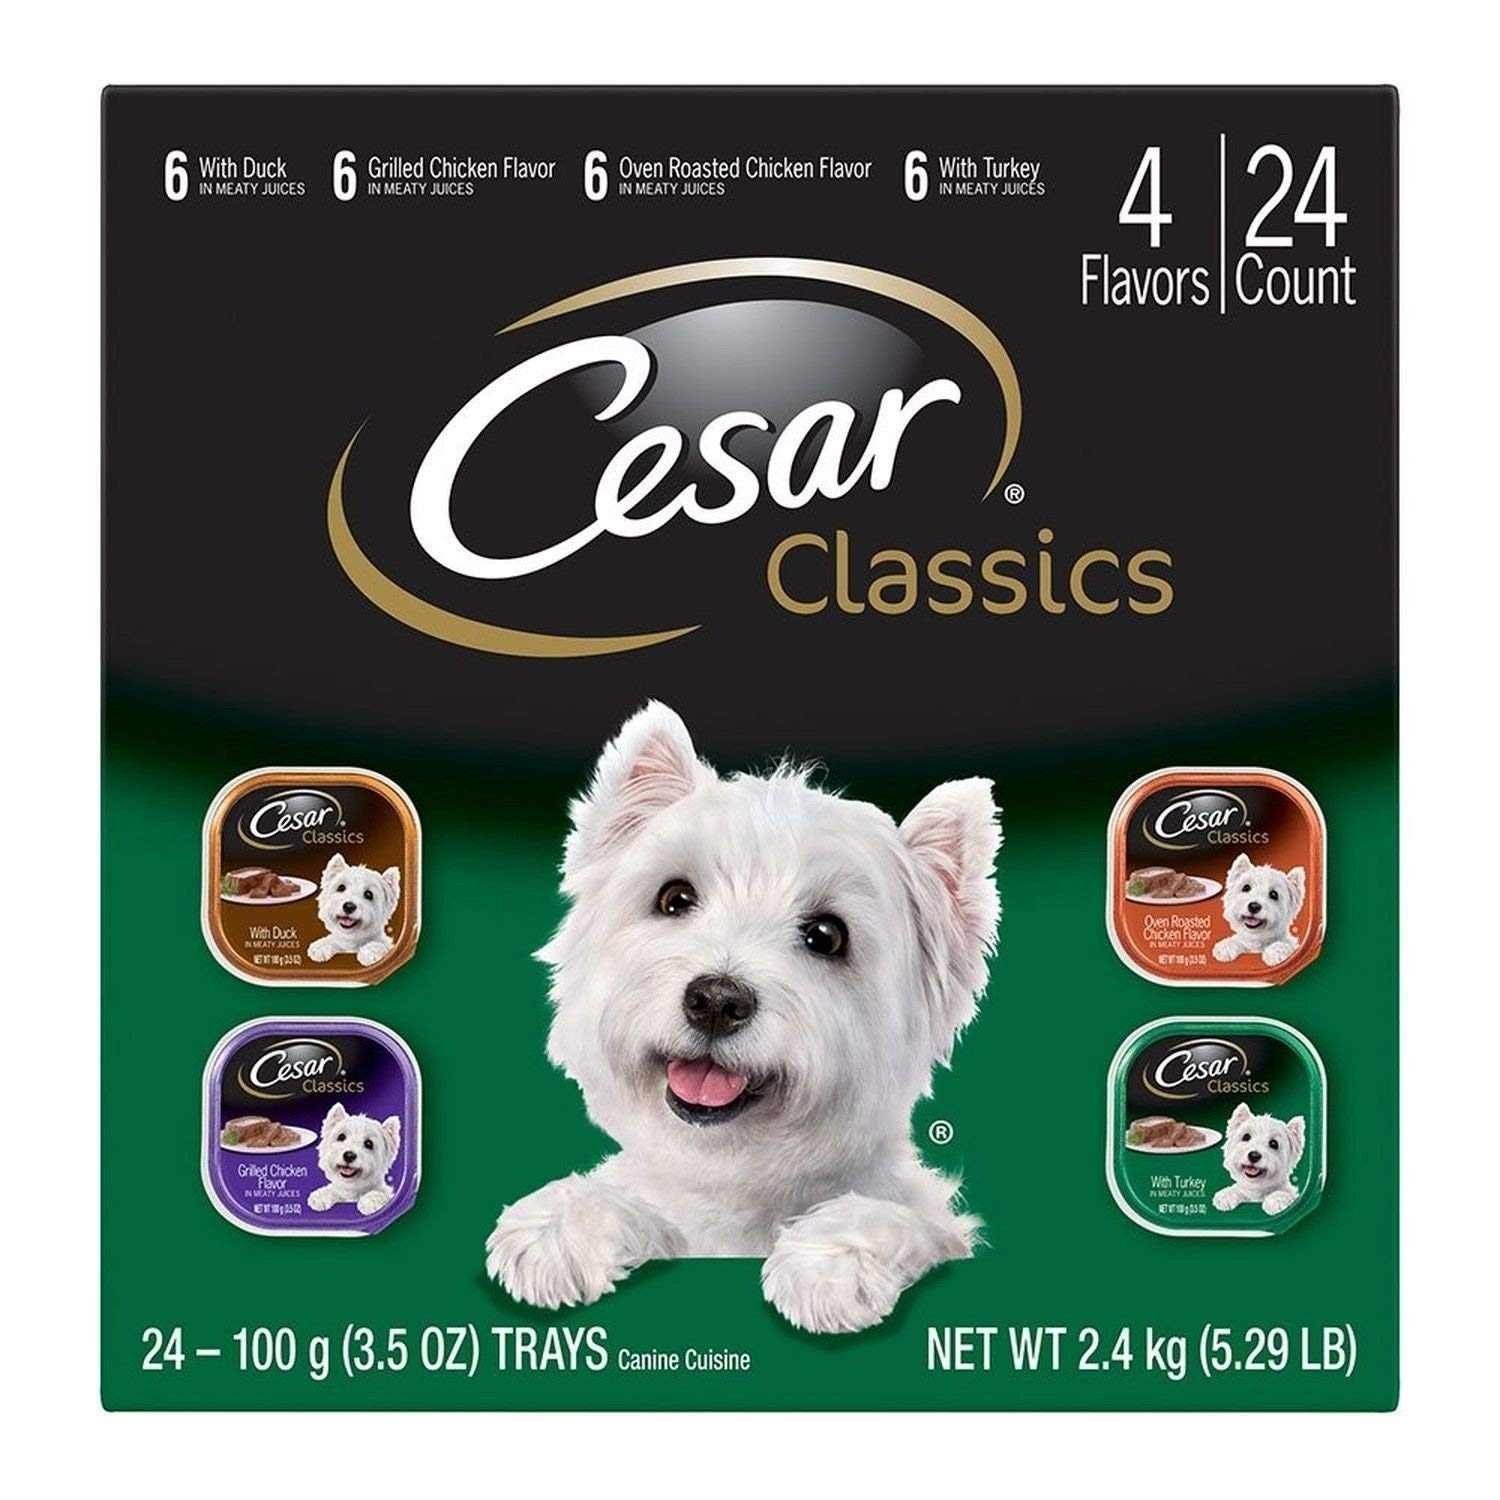 CESAR Classics Adult Wet Dog Food Variety Pack - Poultry 3.5 oz. (Pack of 24) (1)